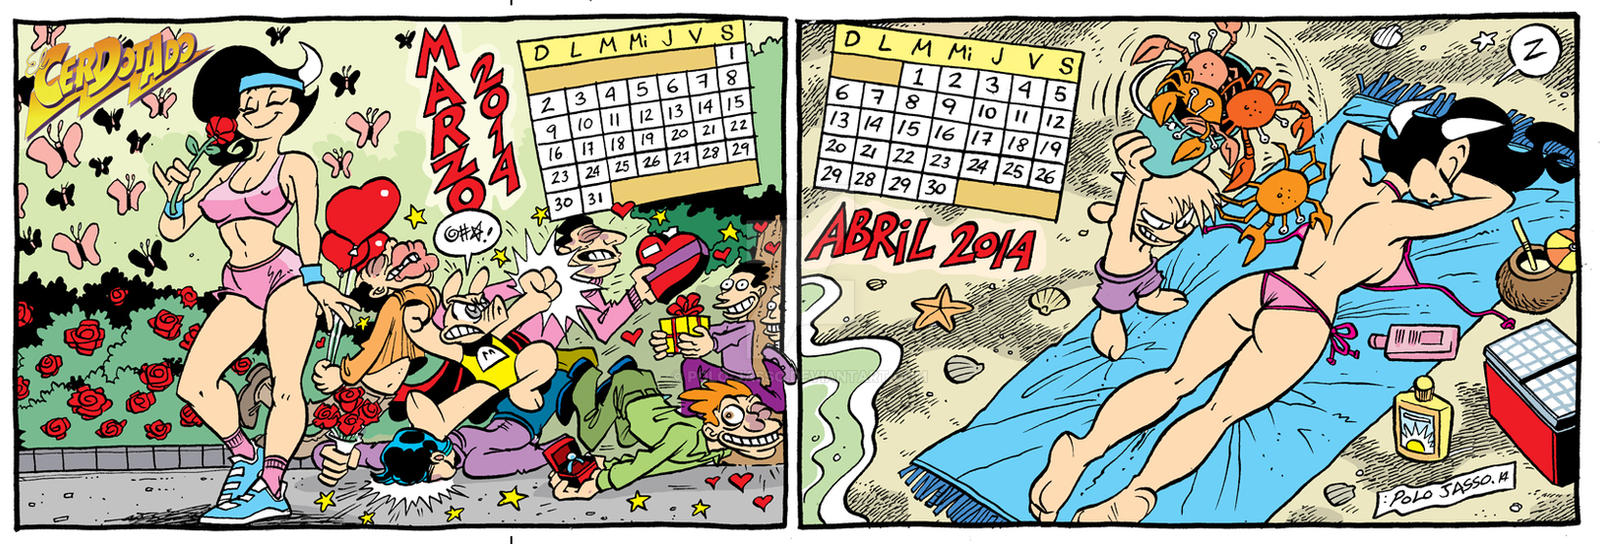 Calendario 2014 Marzo-Abril by POLO-JASSO